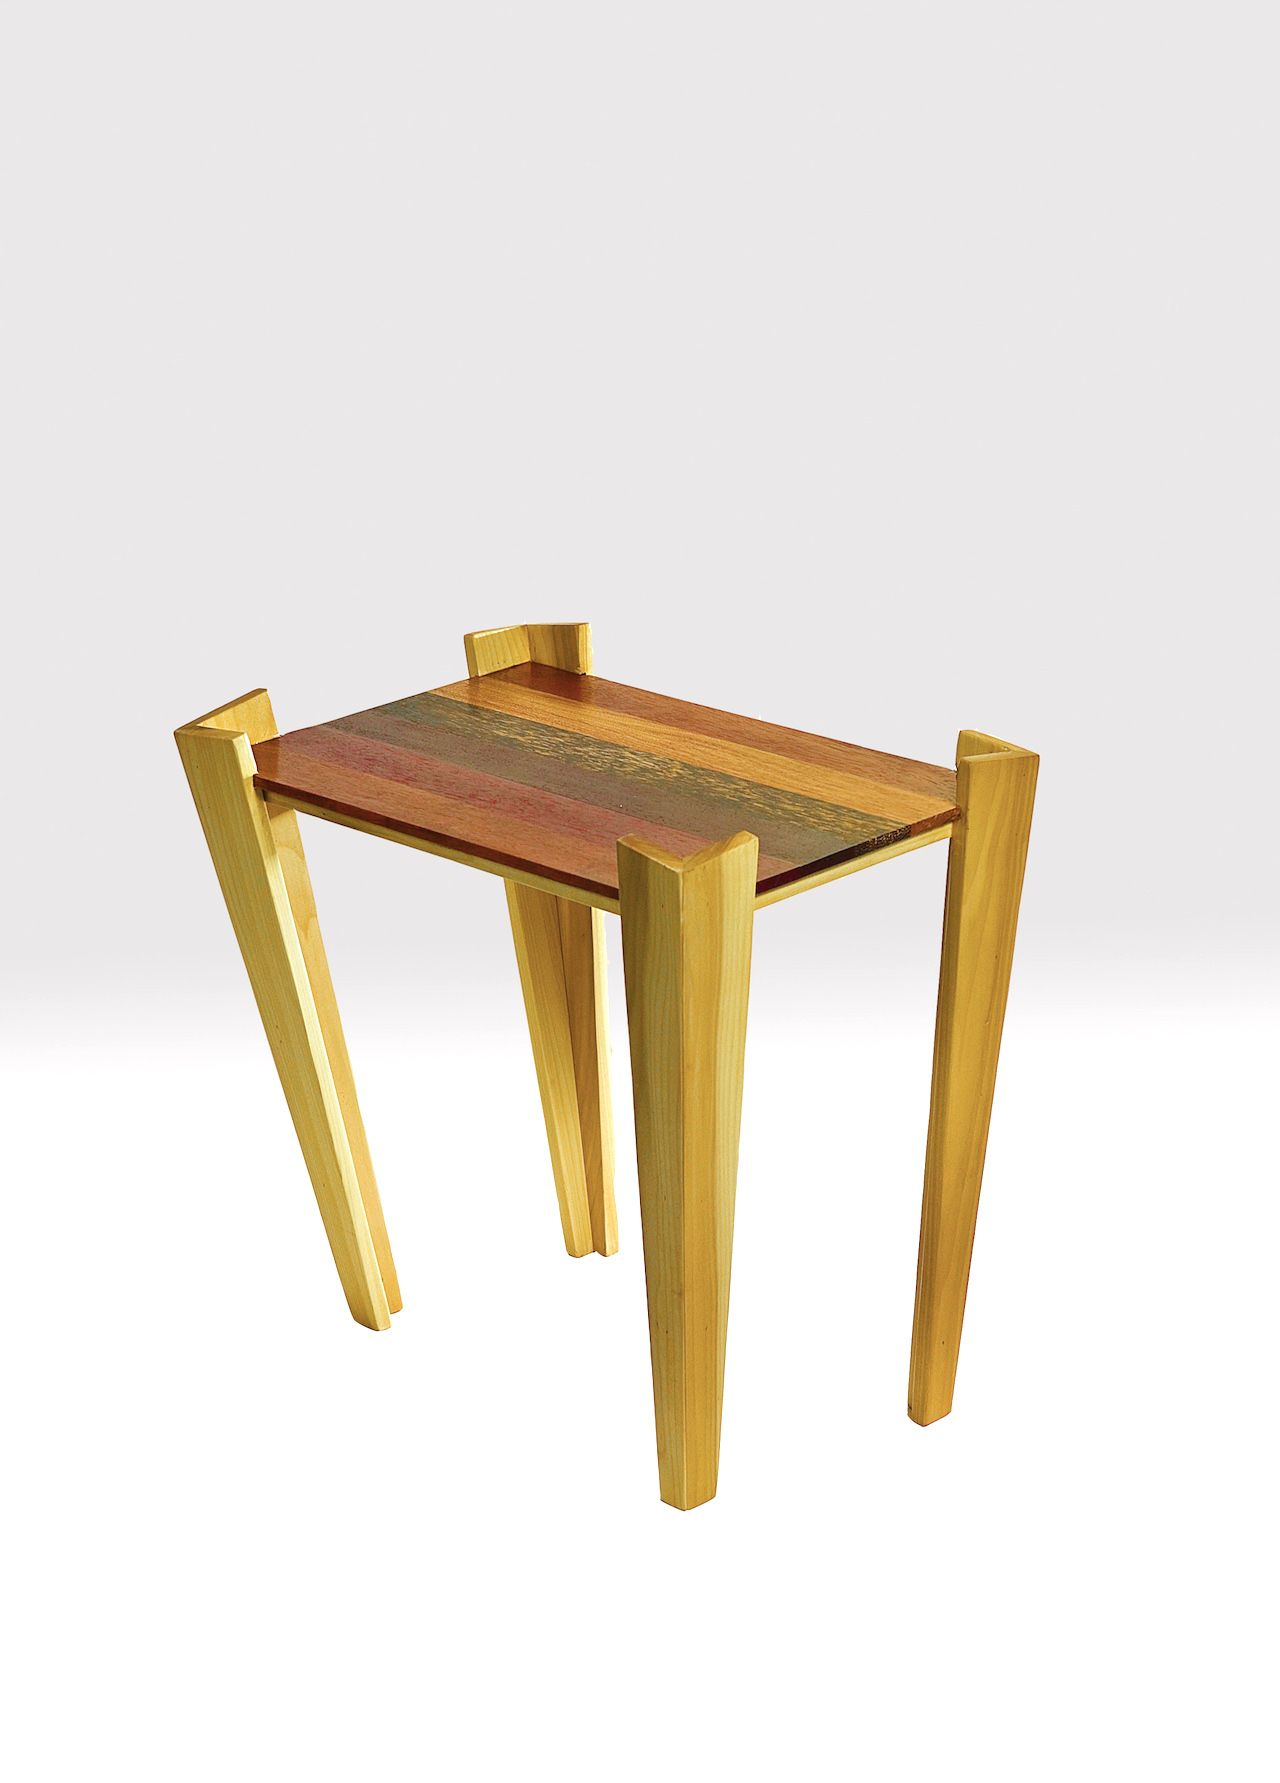 Custom Made Rainbow Tropical Wood And Poplar Contemporary End Table Coffee